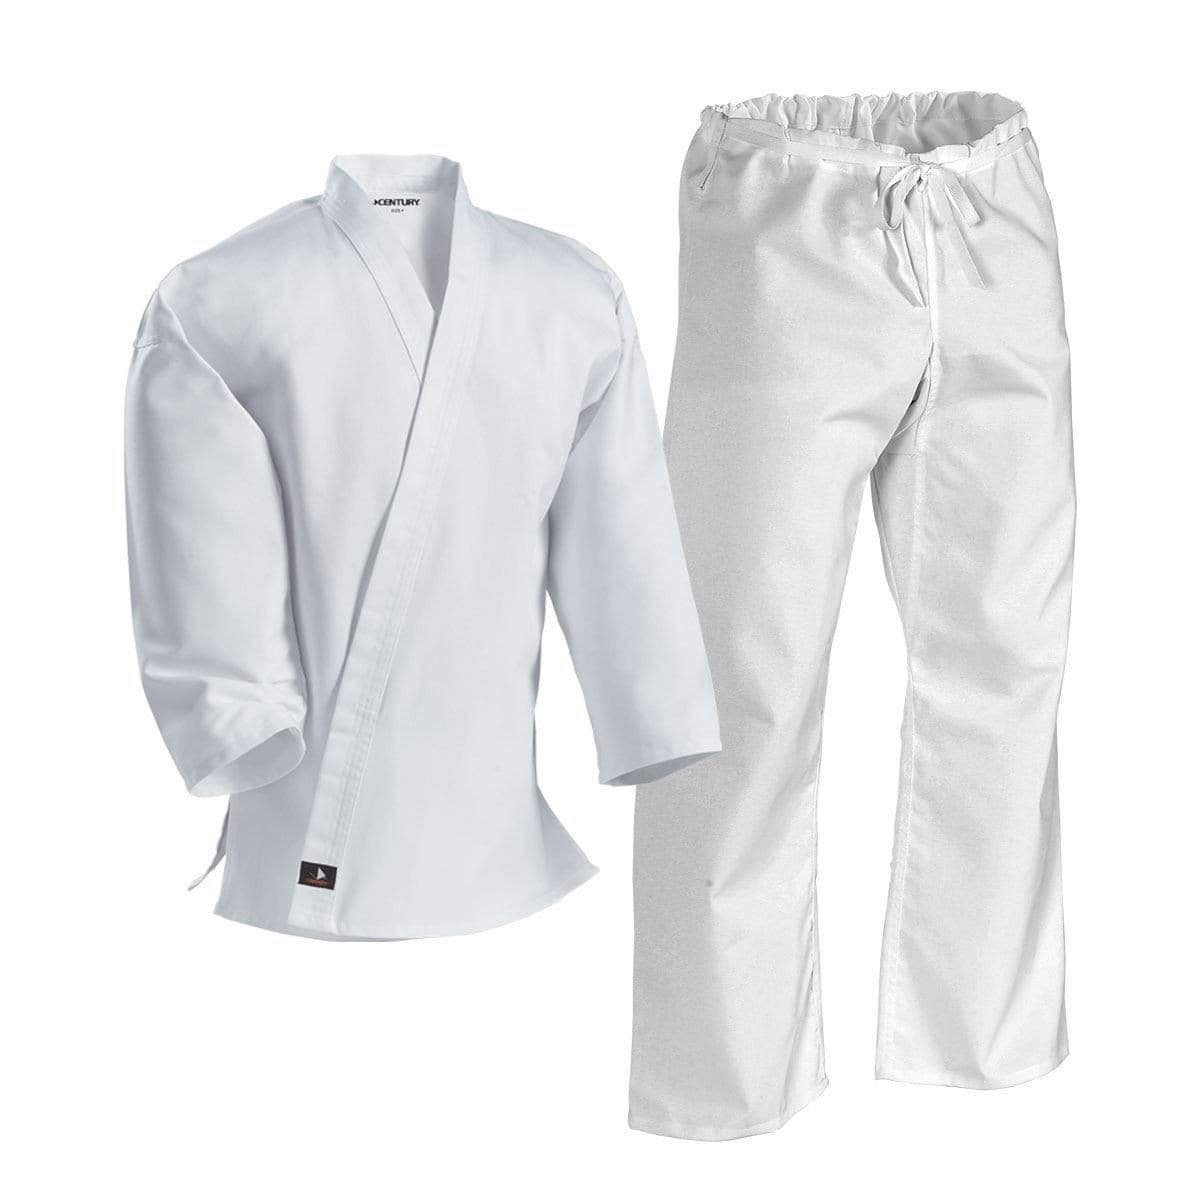 Middleweight Student Martial Arts Karate Uniform with Drawstring Pant c0461